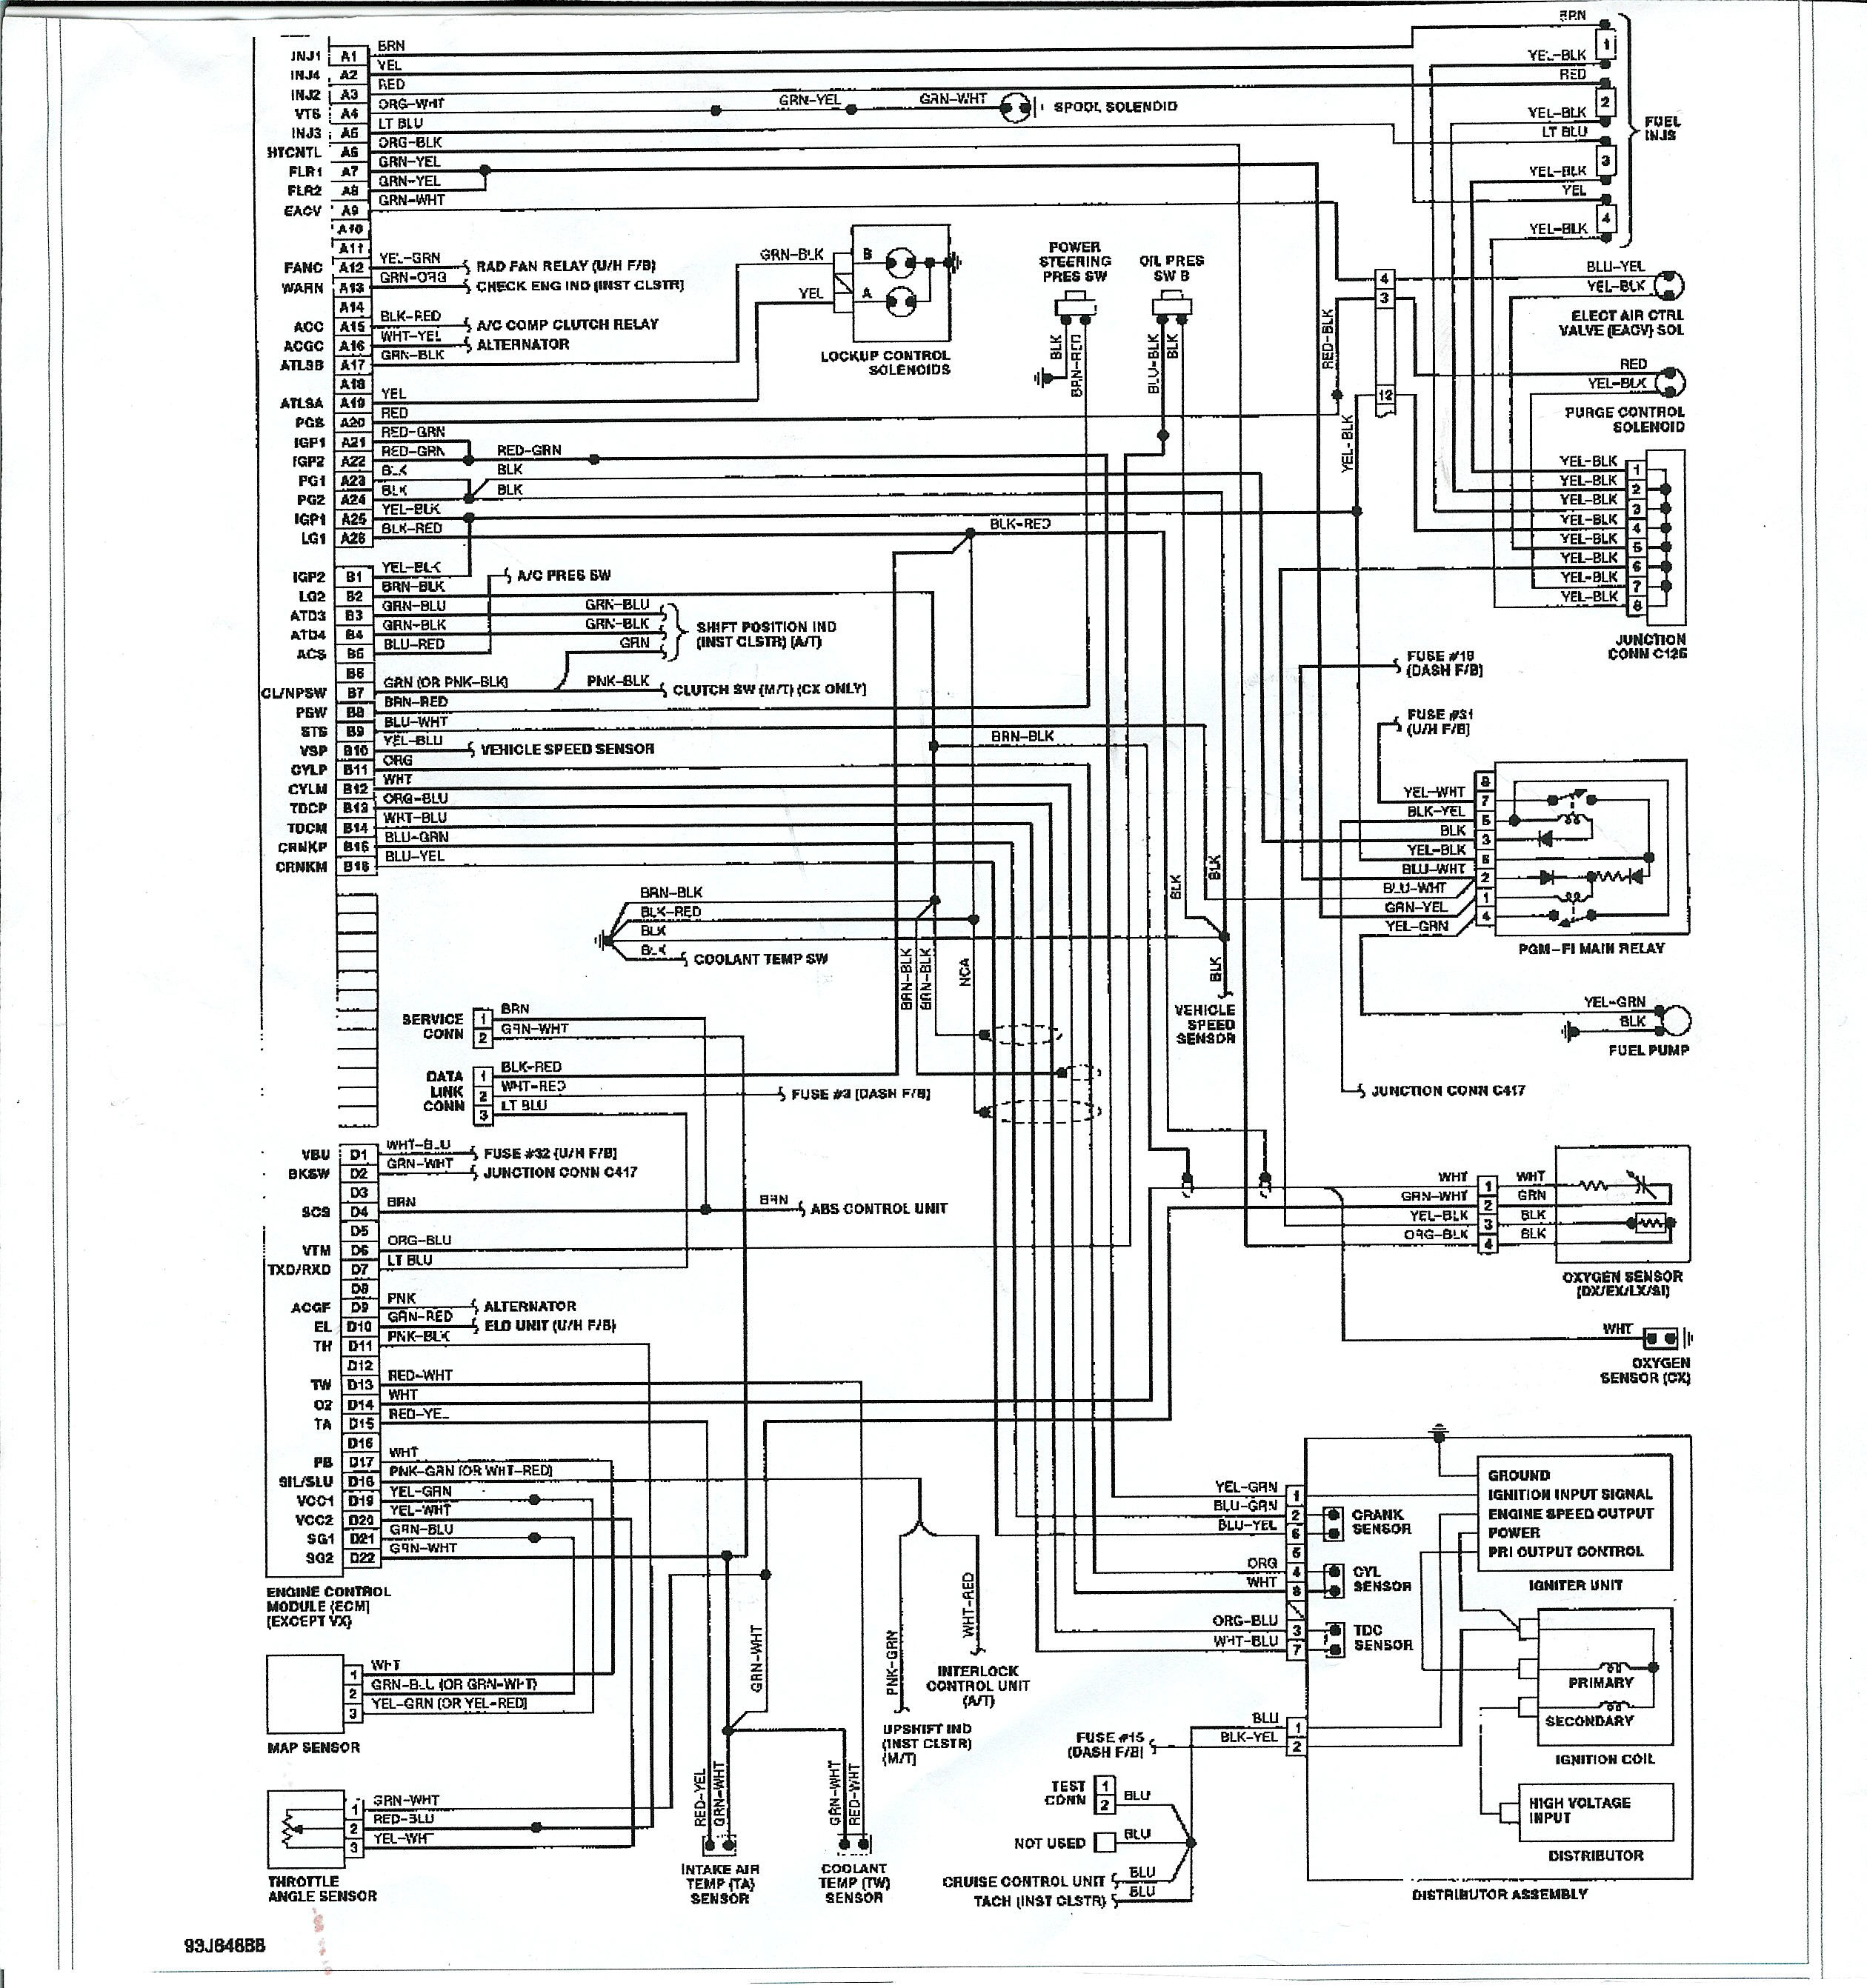 DIAGRAM] Fuse Box Diagram For 1999 Honda Accord FULL Version HD Quality  Honda Accord - EGGDIAGRAM.BELLEILMERSION.FRDiagram Database